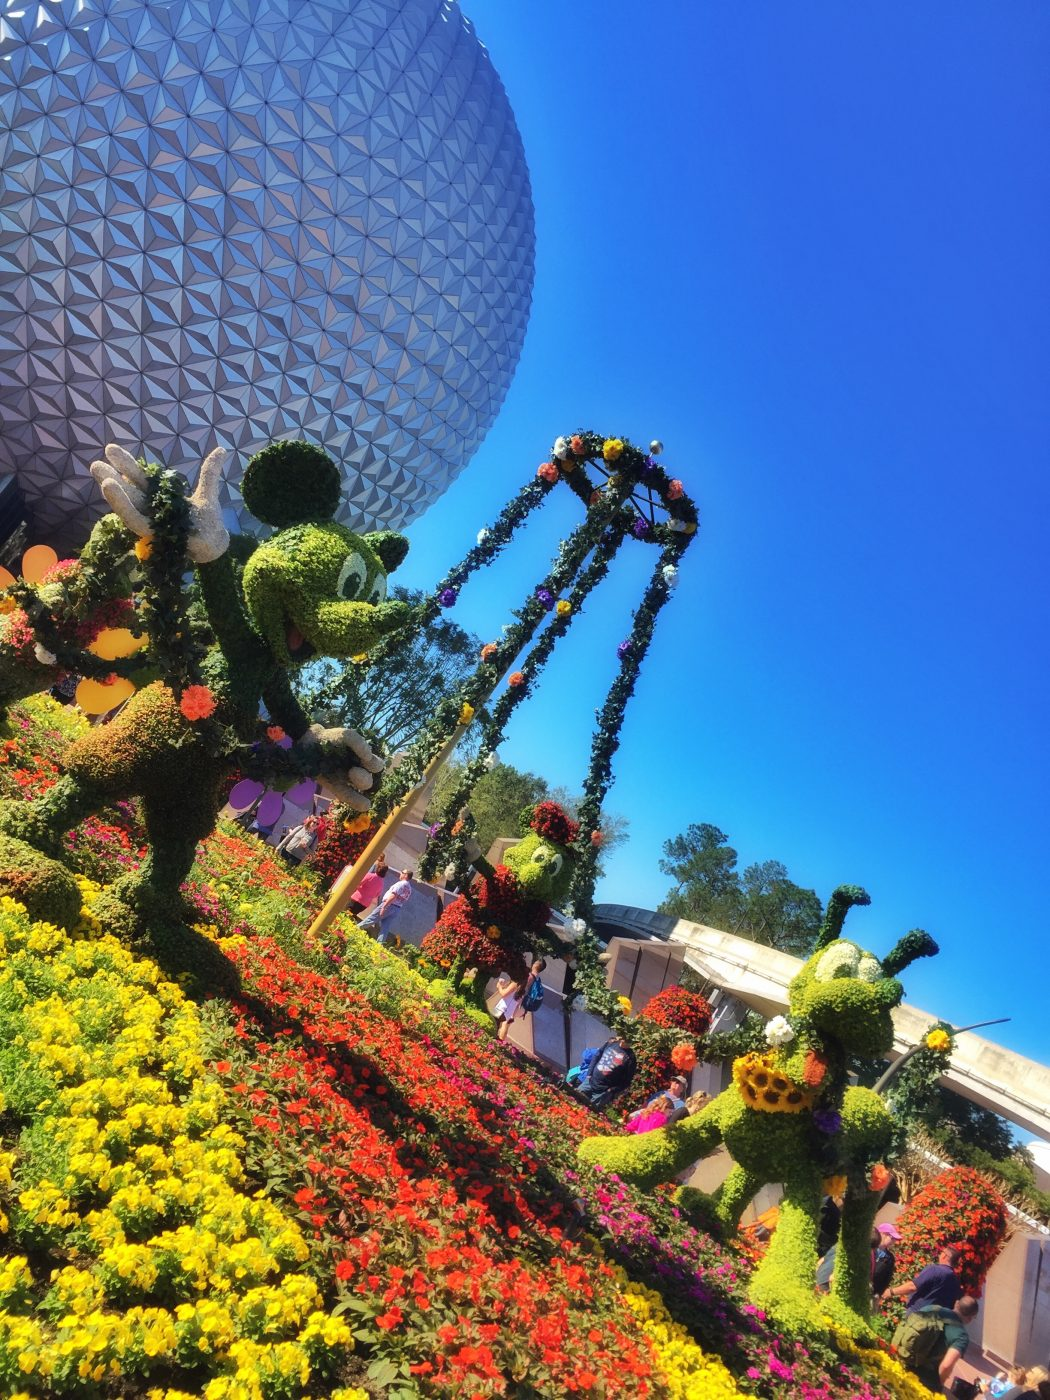 Disney's Epcot International Flower and Garden Festival Topiaries